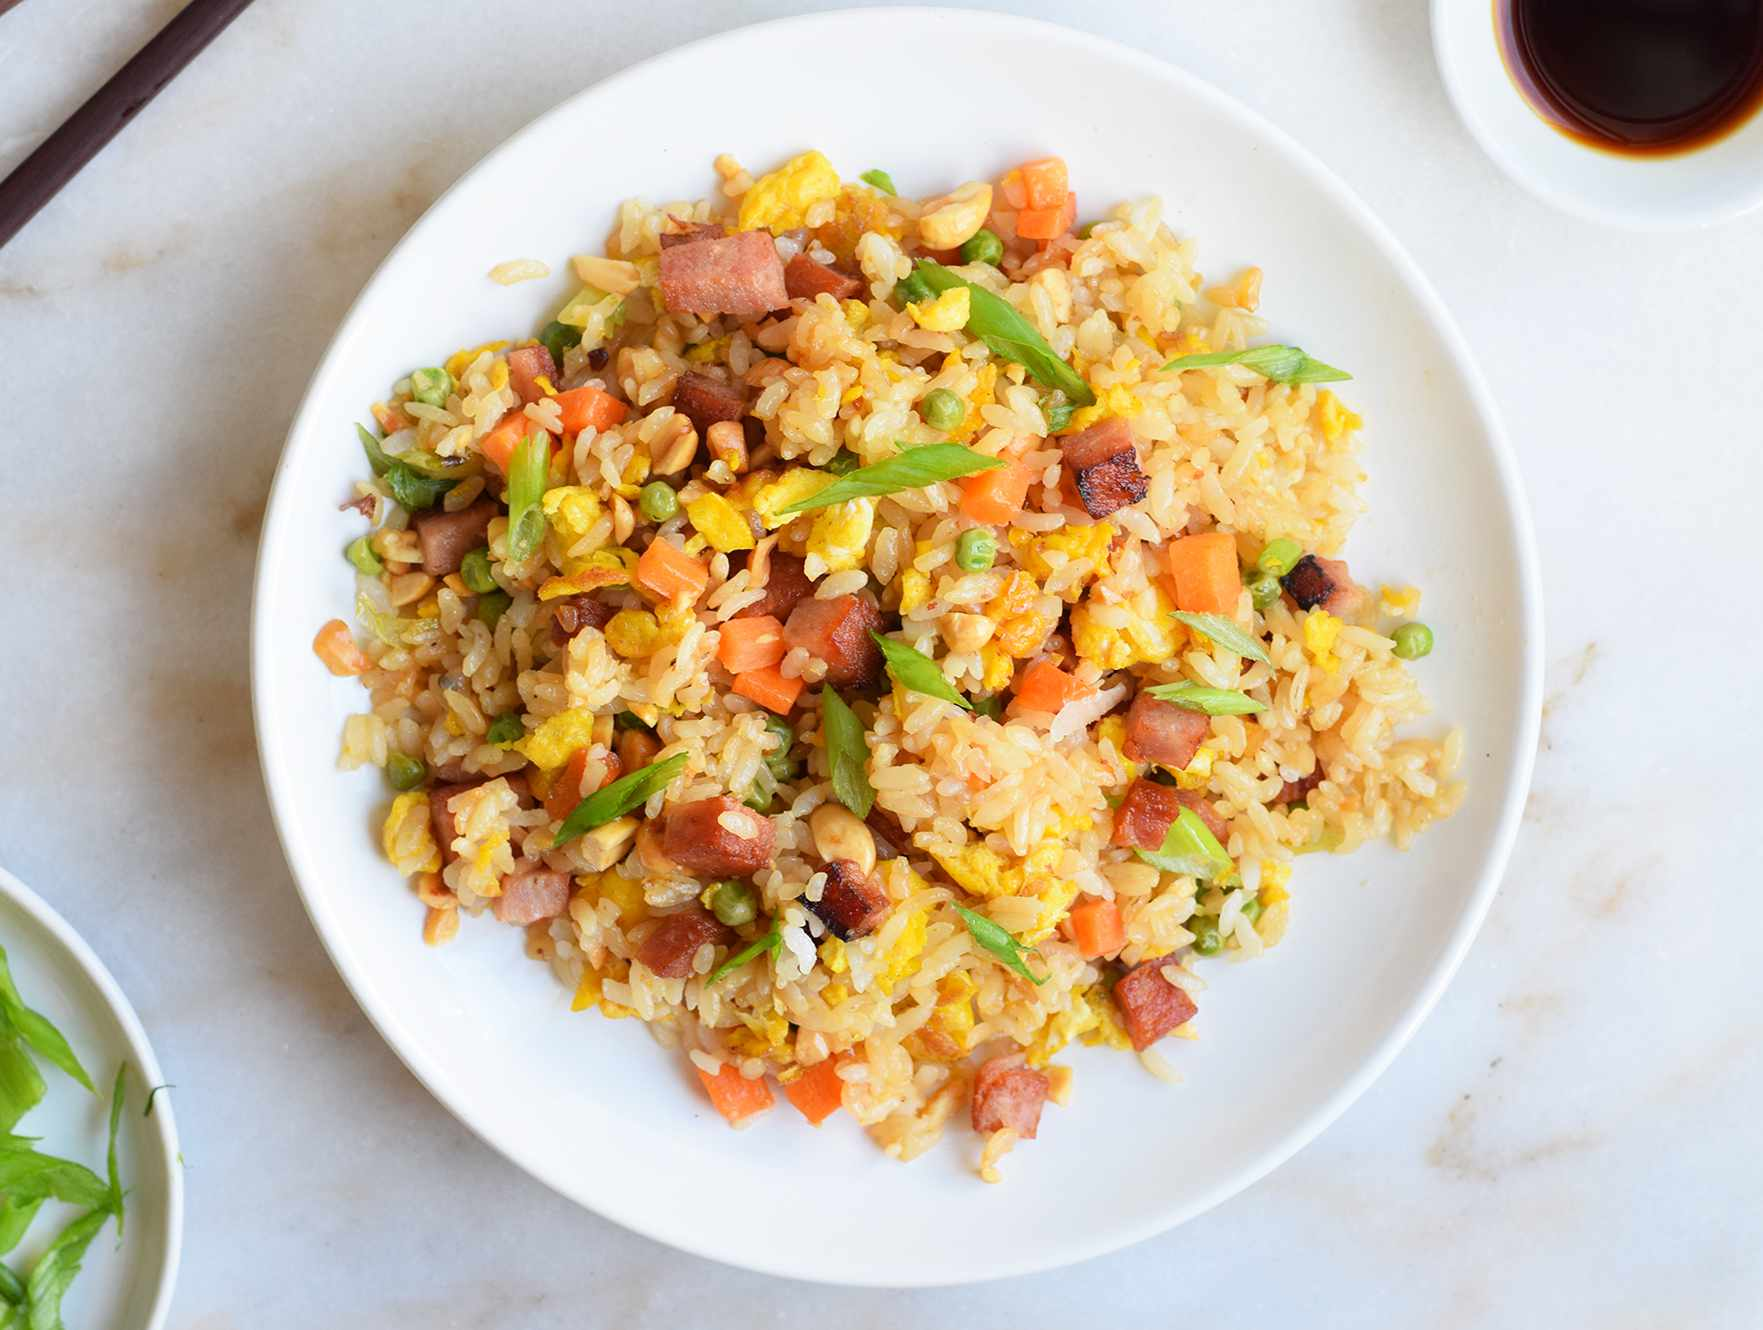 spam fried rice on a plate